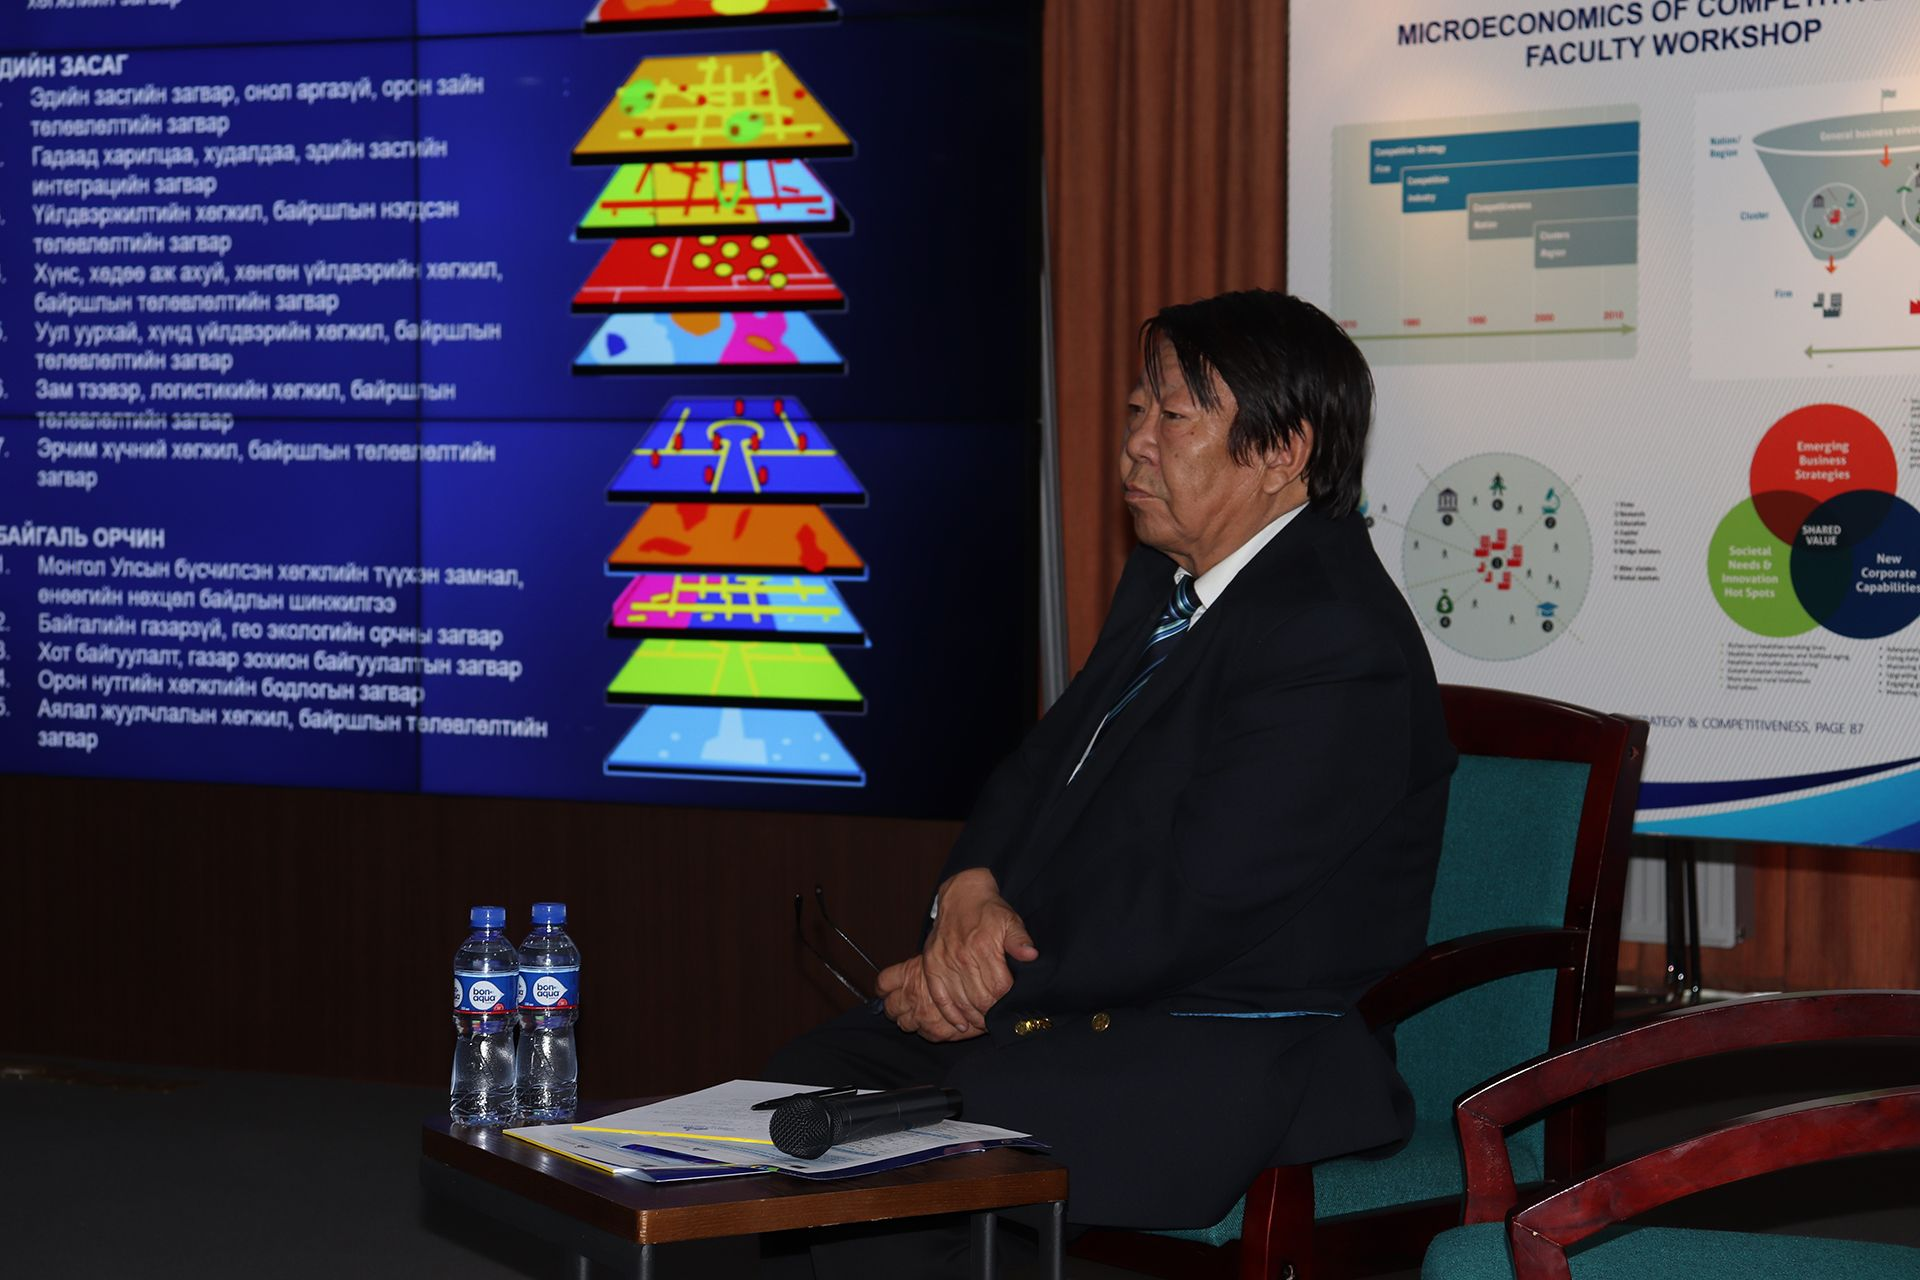 Academician Dorj Tuvd, Vice President of Academy of Science